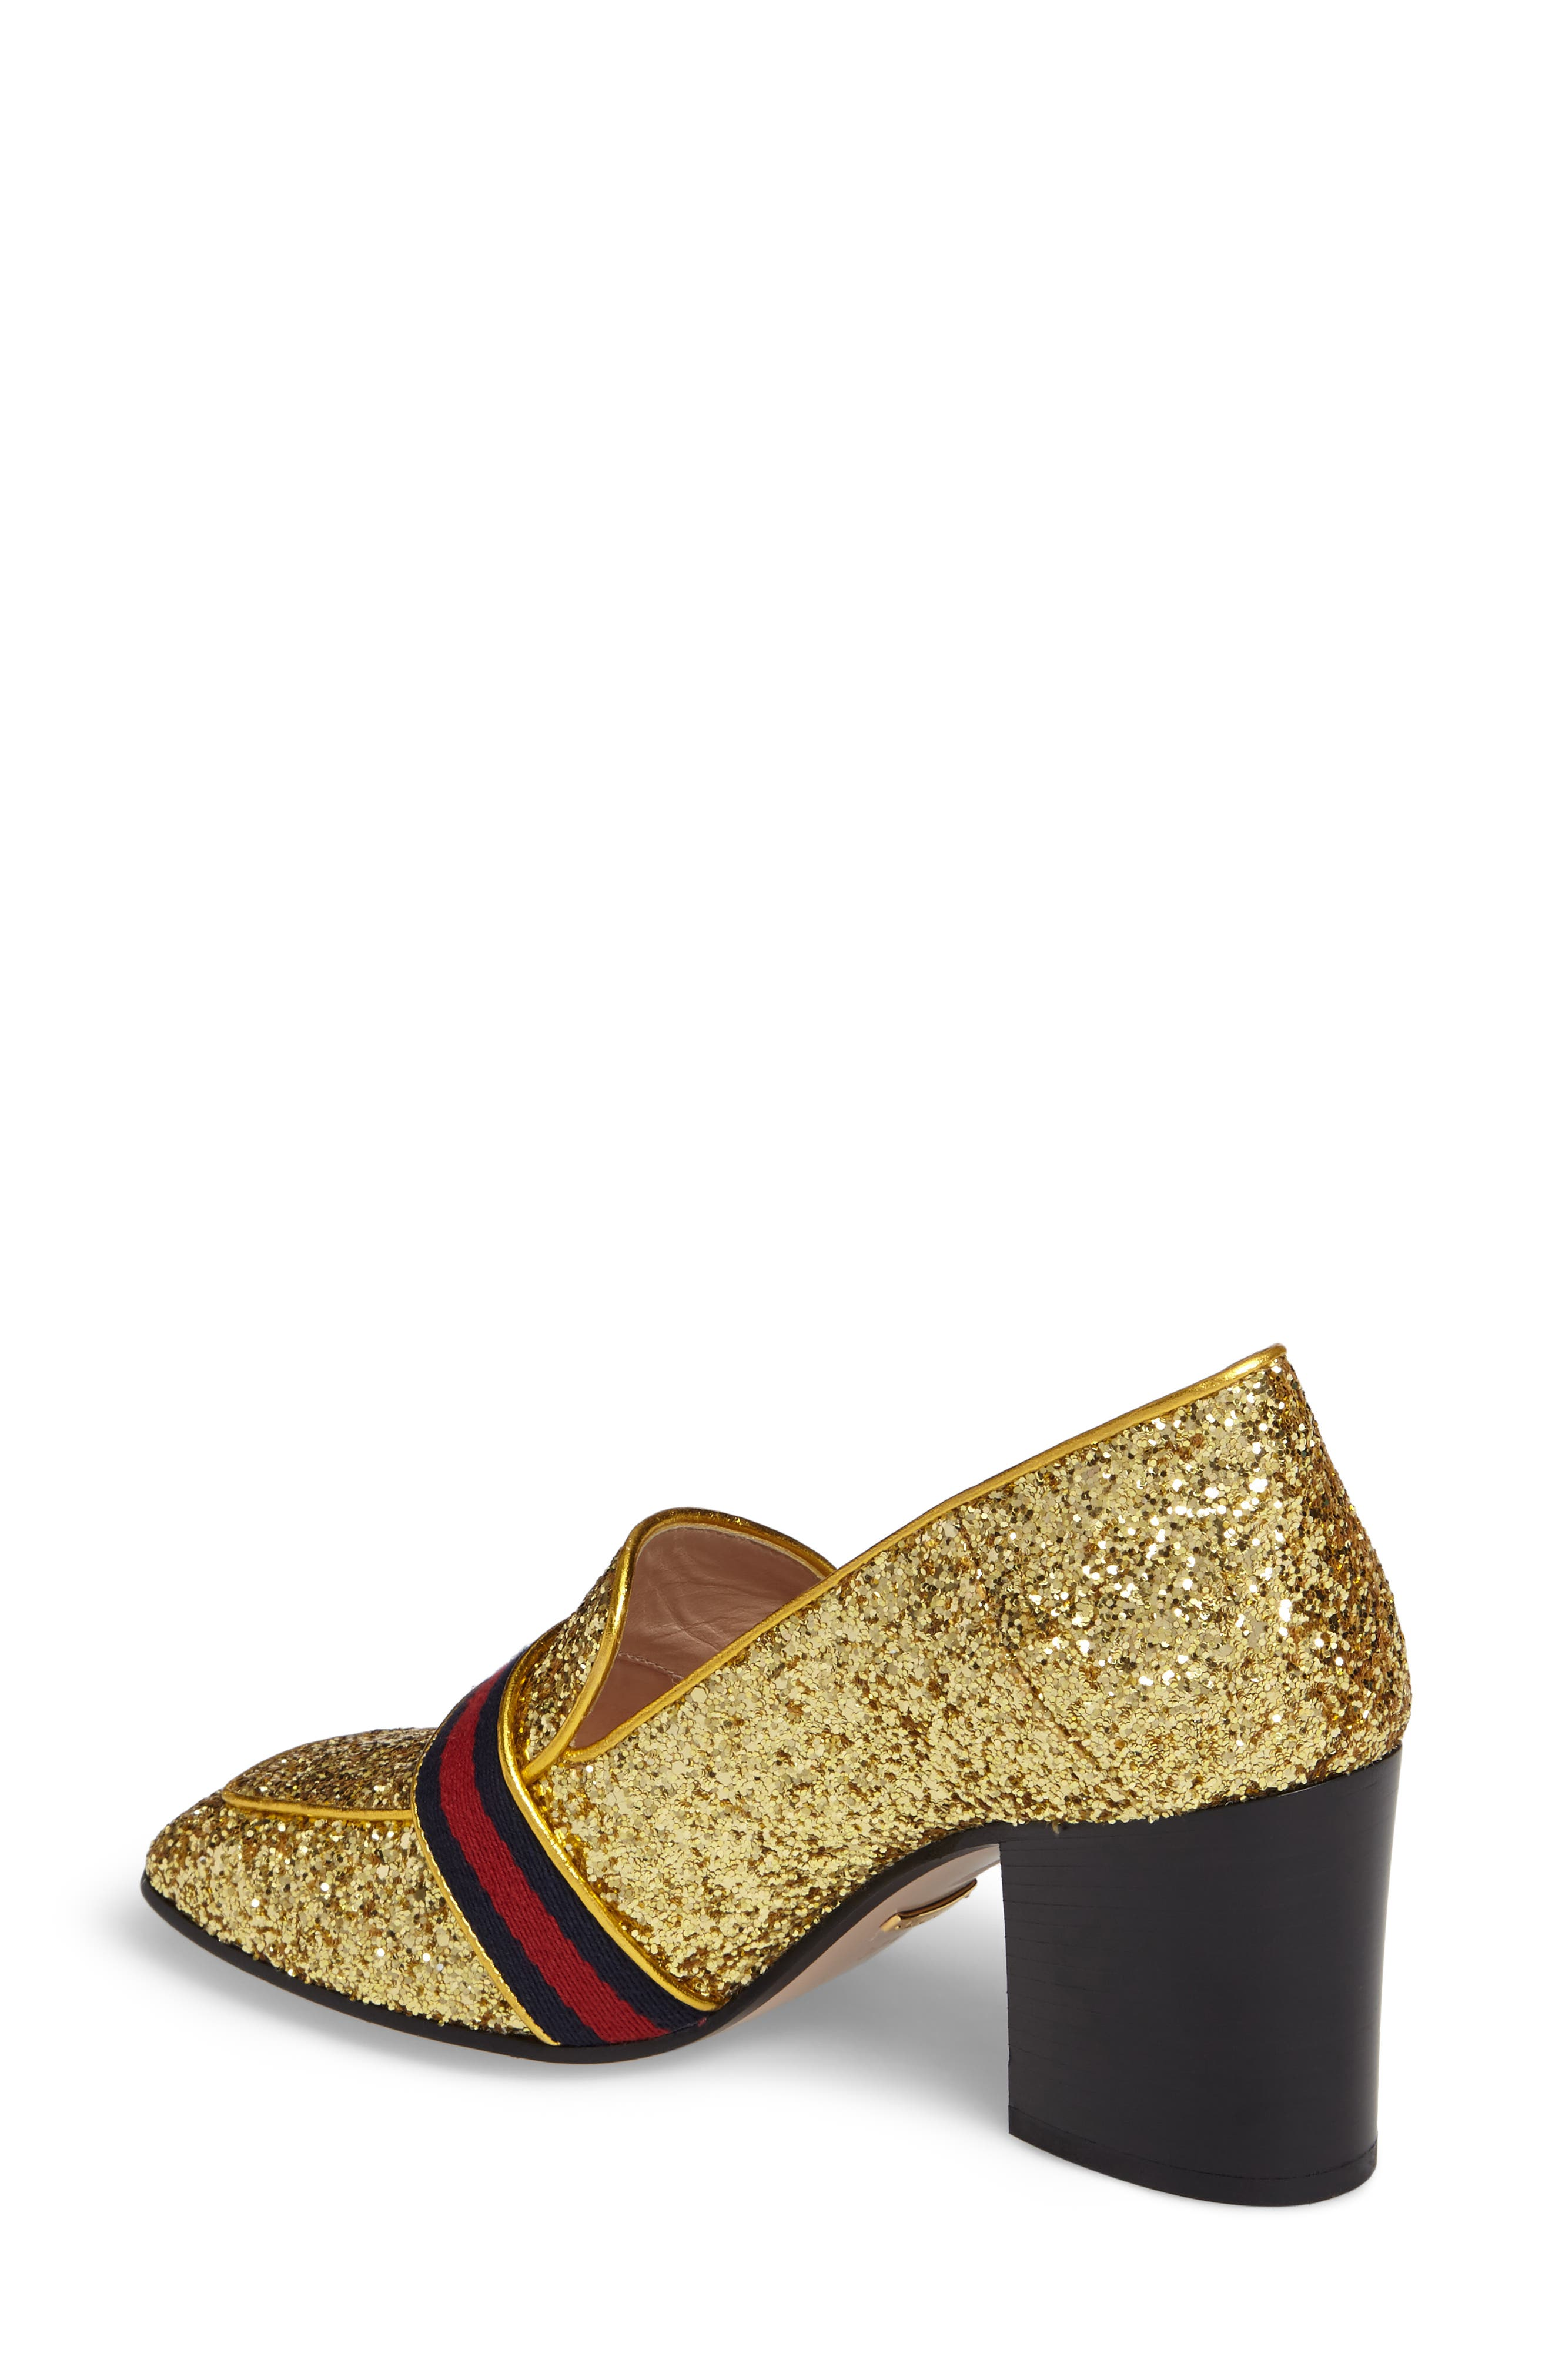 Glitter Peyton Loafer Pump,                             Alternate thumbnail 3, color,